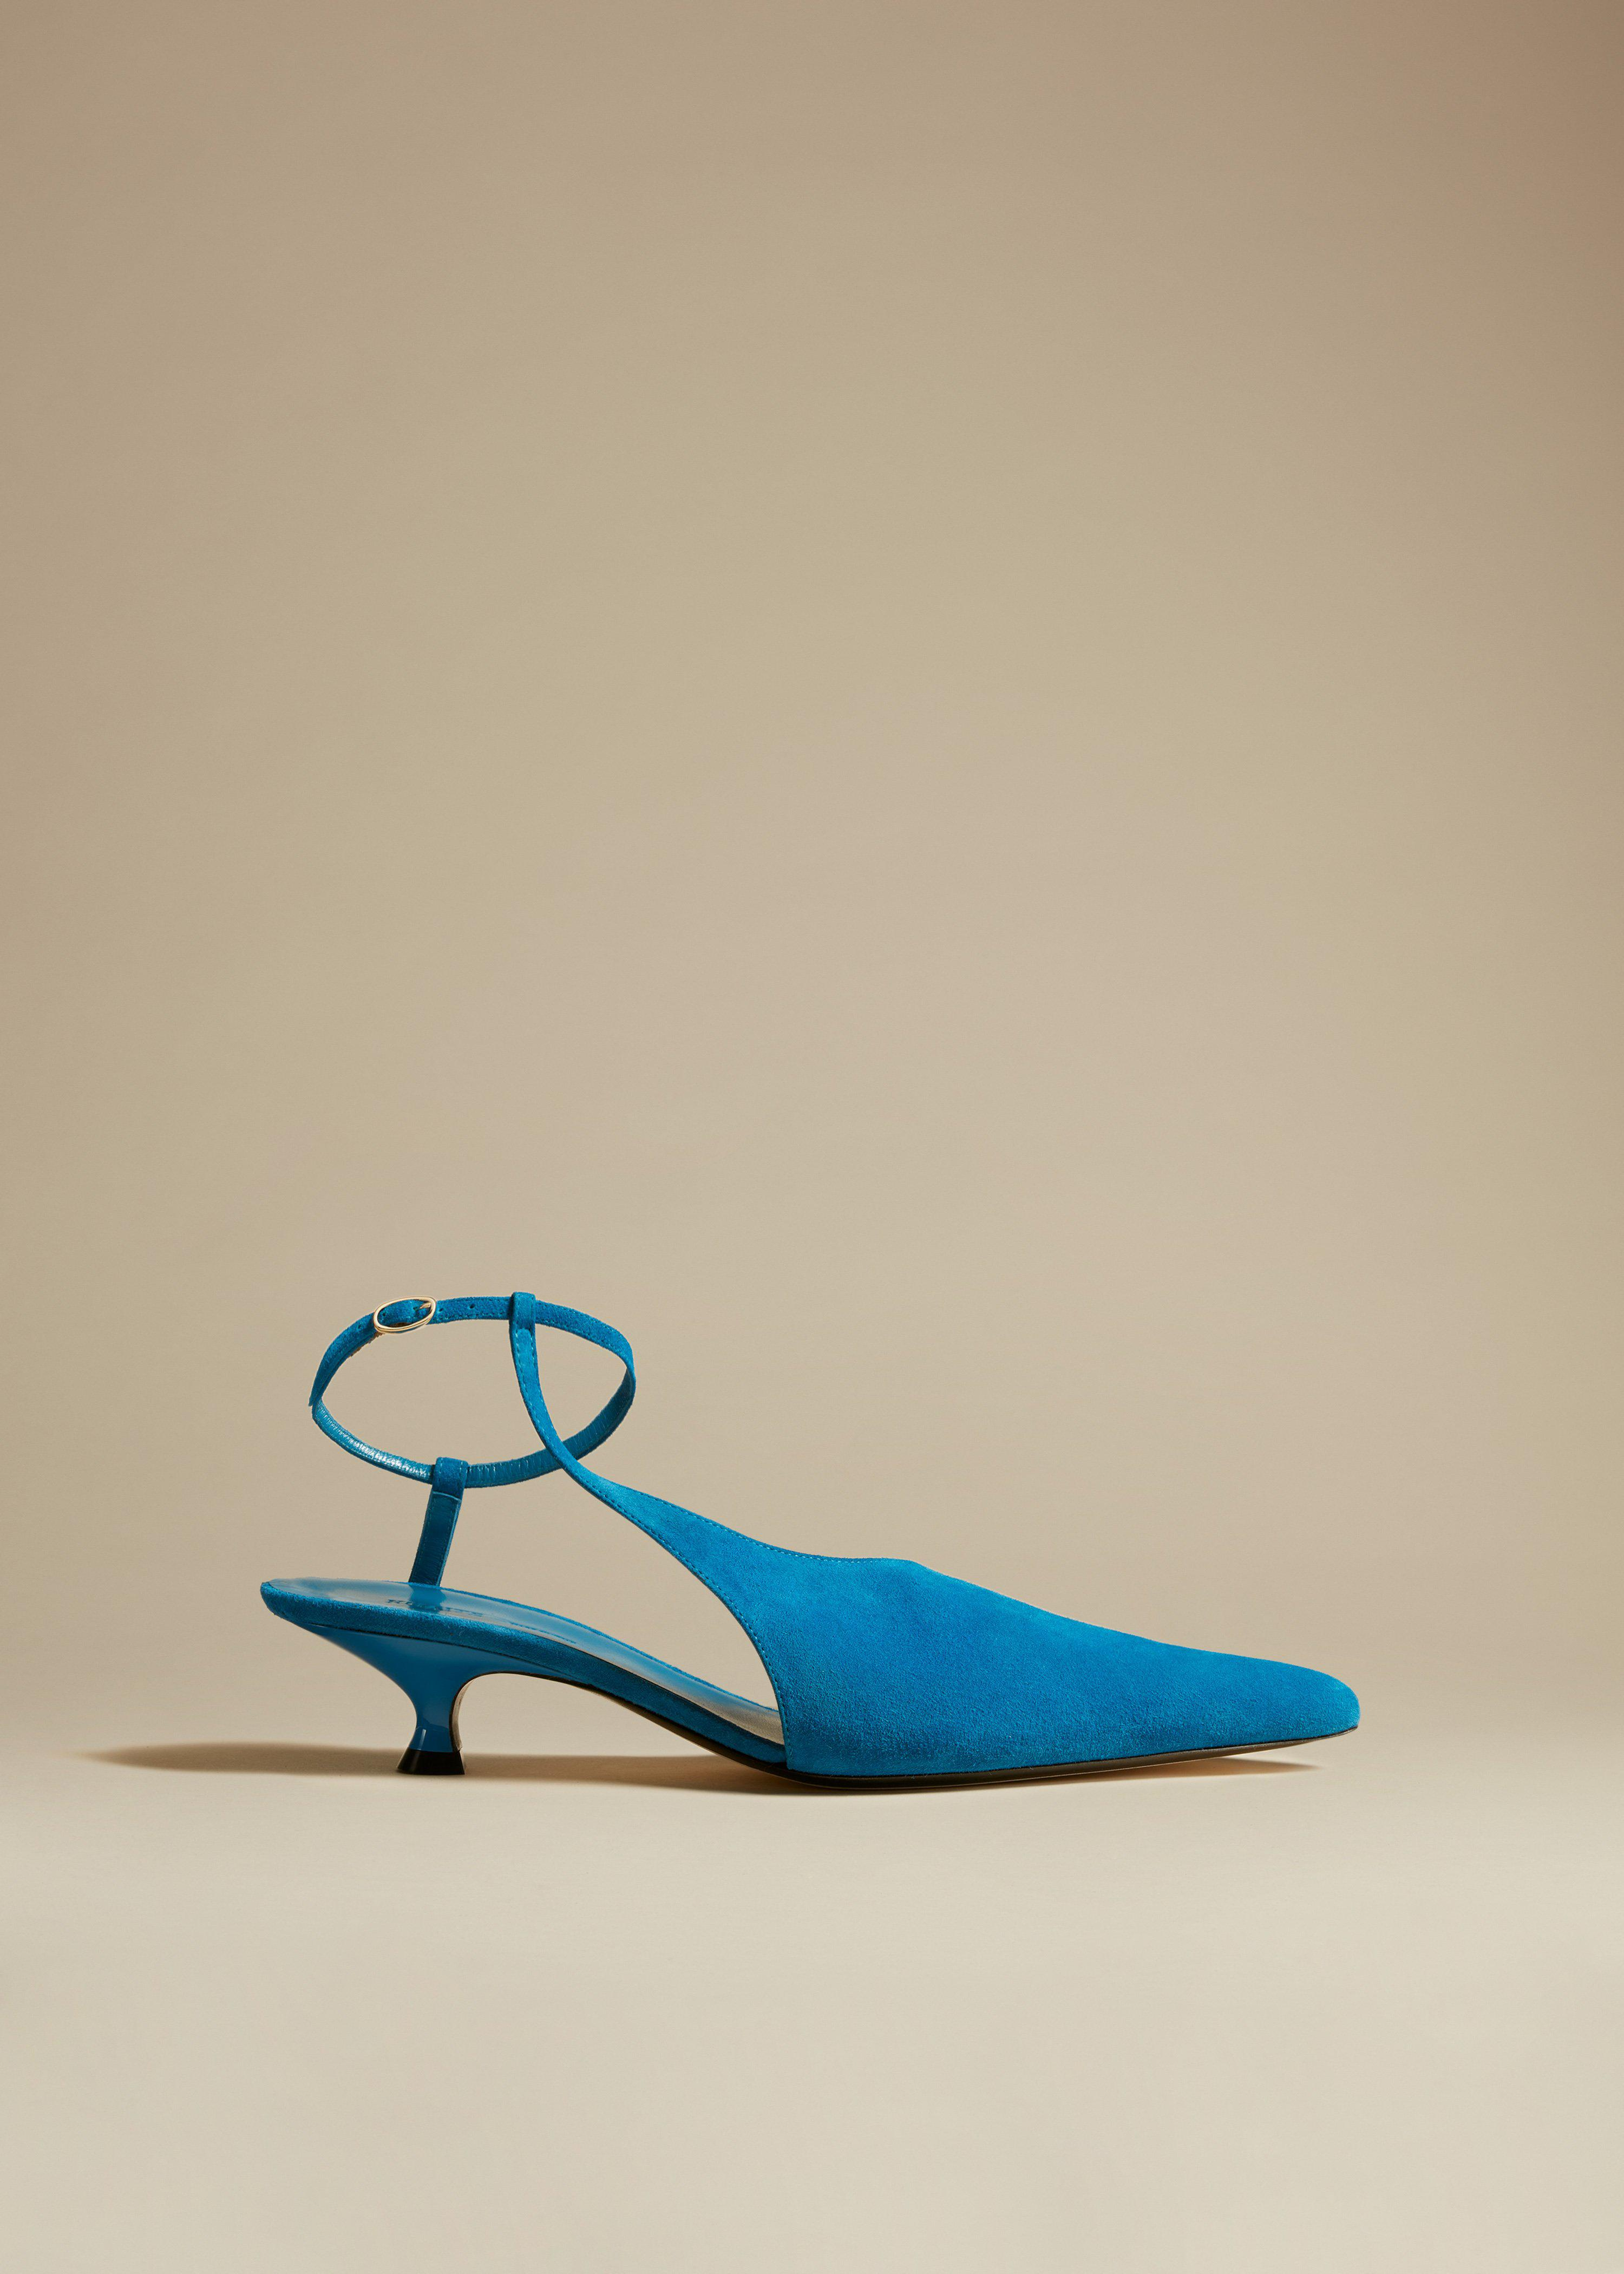 The Seville Pump in Lagoon Suede